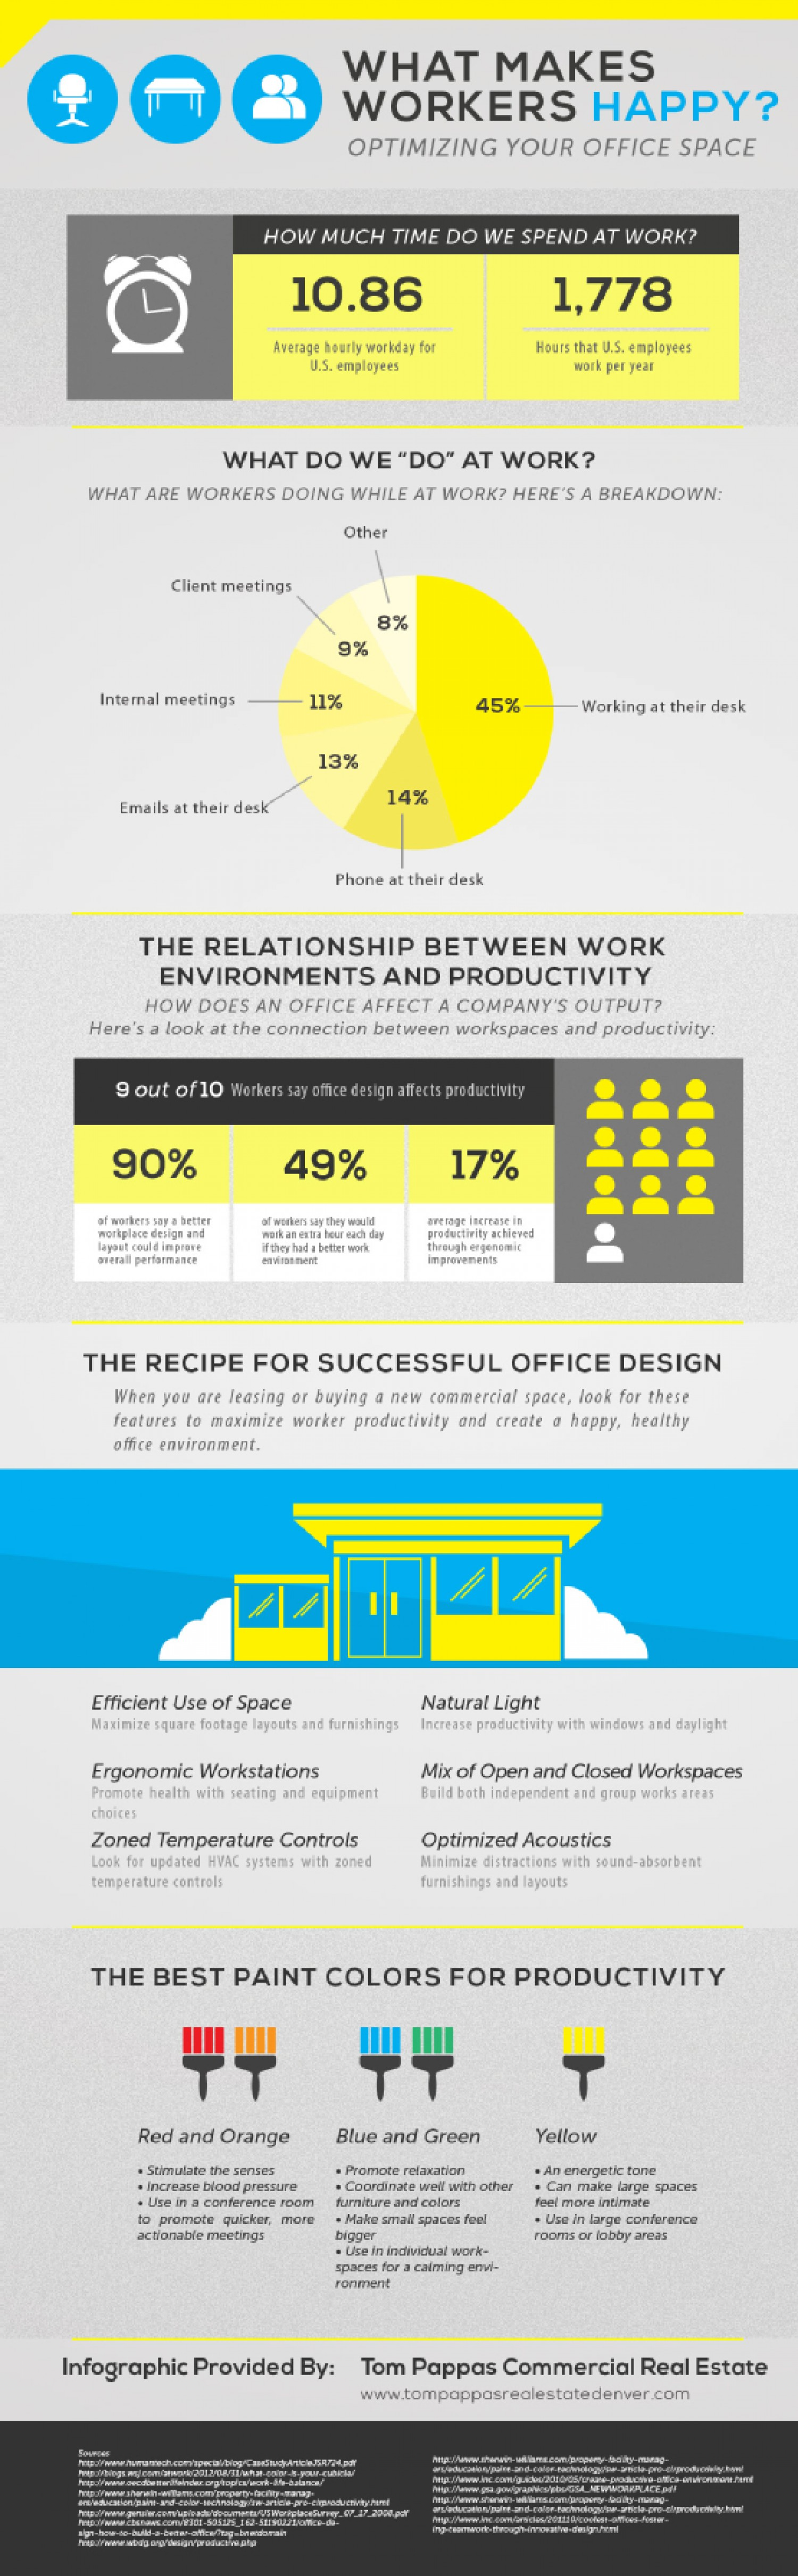 What Makes Workers Happy? Optimizing Your Office Space